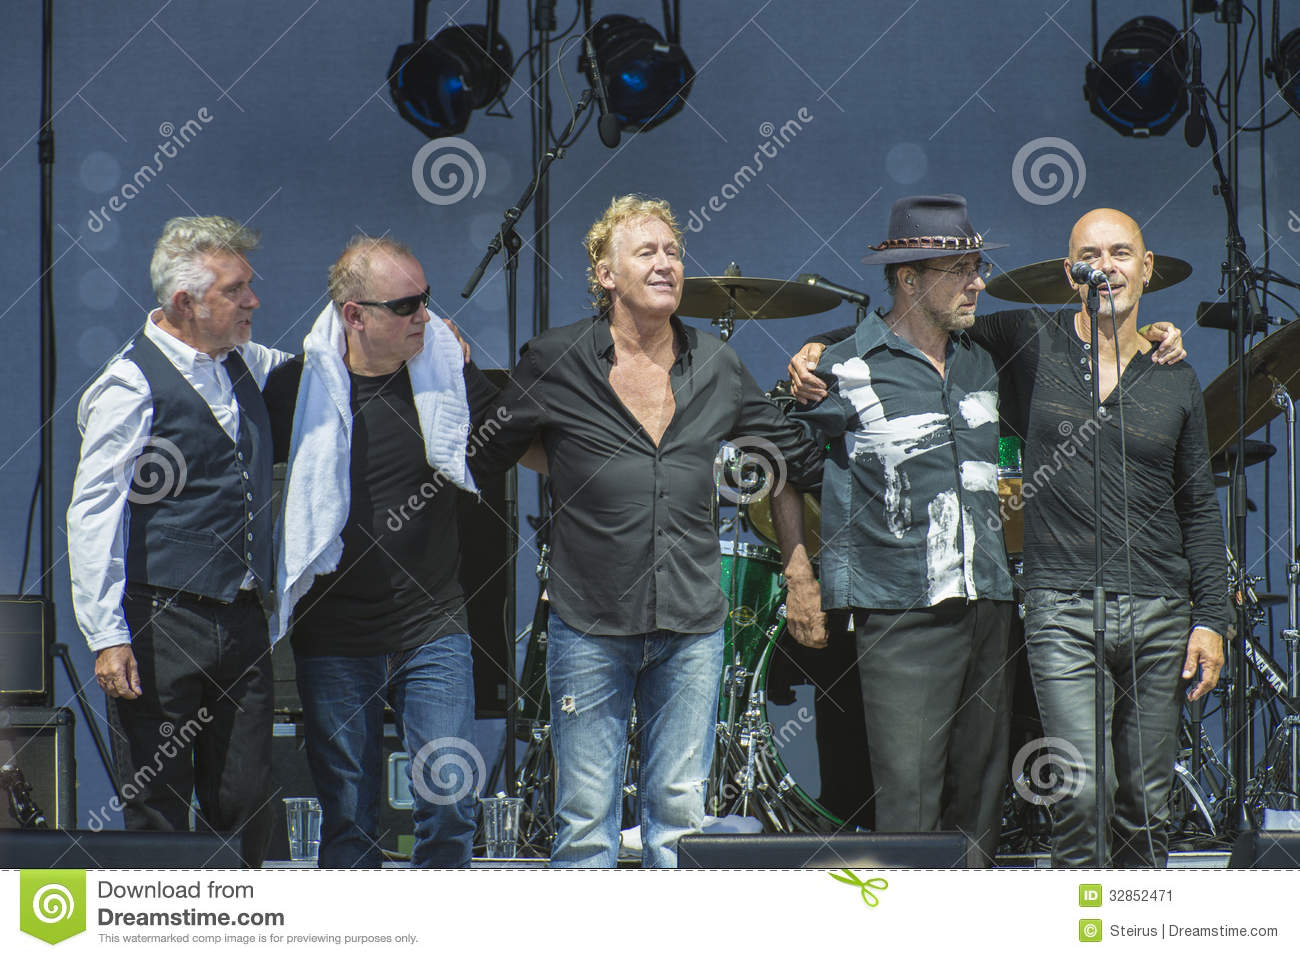 manfred mann ́s earth band discography